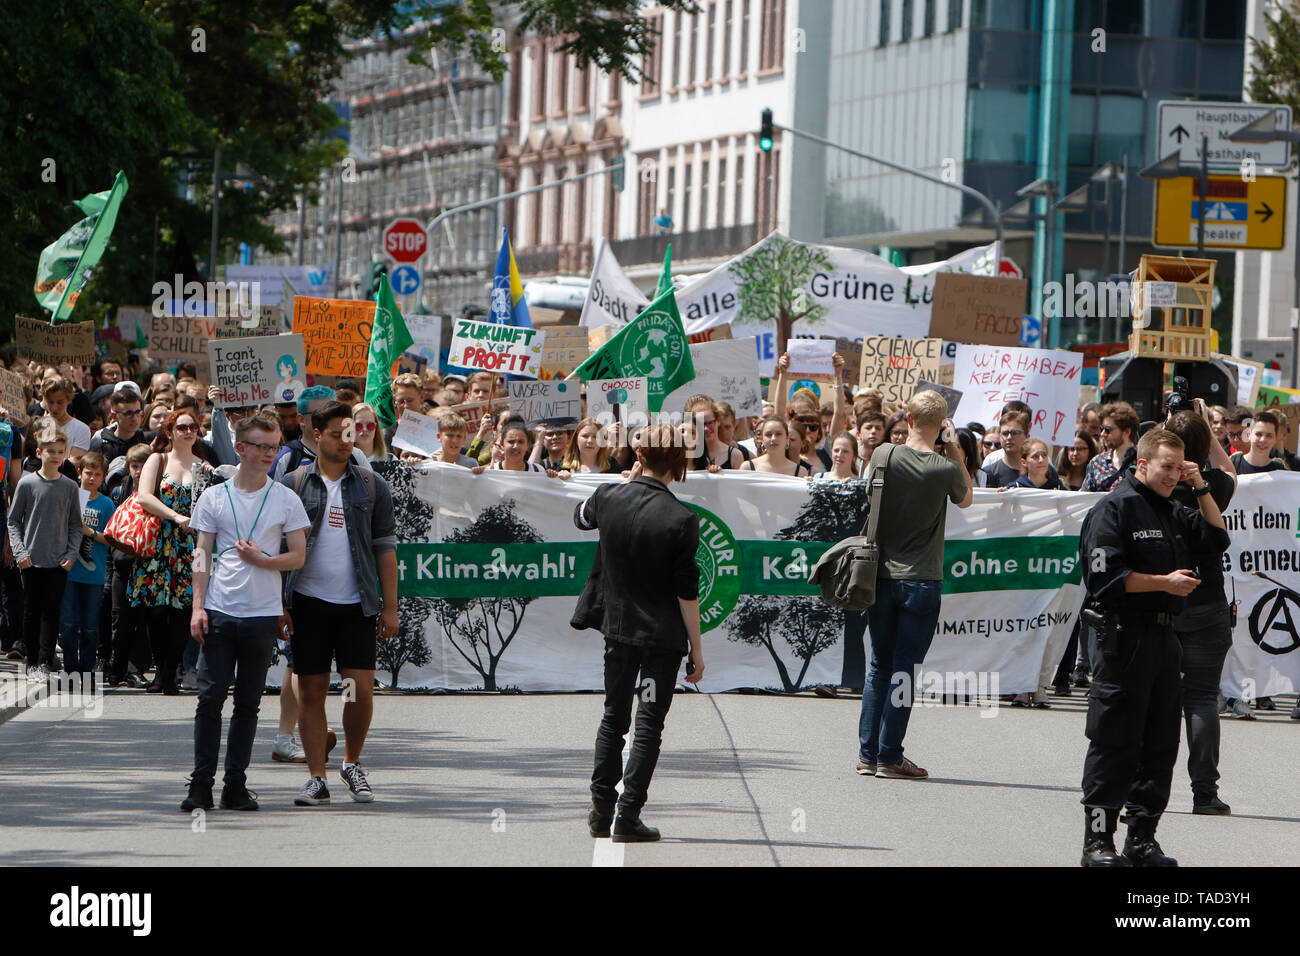 Frankfurt, Germany. 24th May 2019. The protest marches through Frankfurt city centre. Around 4,500 young people marched through Frankfurt to the European Central Bank, to protest against the climate change and for the introduction of measurements against it. The protest took place as part of an Europe wide climate strike, two days ahead of the 2019 European elections. - Stock Image